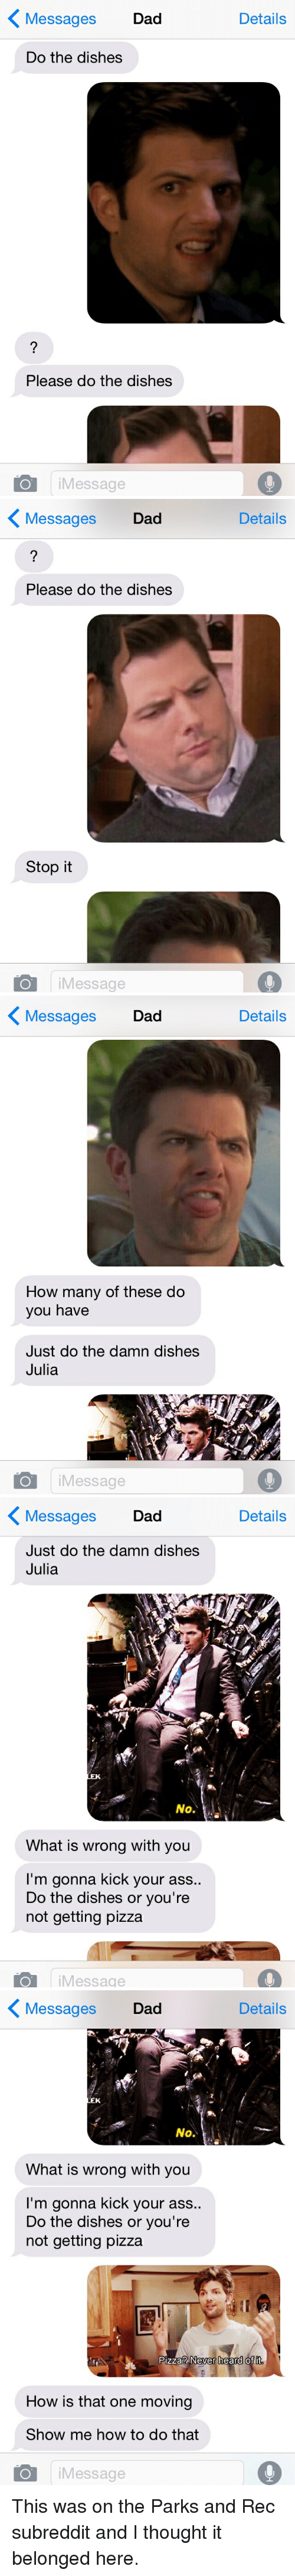 oldpeoplefacebook: Messages  Dad  Details  Do the dishes  Please do the dishes  iMessage   〈 Messages  Dad  Details  Please do the dishes  Stop it  O iMessage   〈 Messages  Dad  Details  How many of these do  you have  Just do the damn dishes  Julia  iMessage   〈Messages Dad  Details  Just do the damn dishes  Julia  EK.  No.  What is wrong with you  I'm gonna kick your ass..  Do the dishes or you're  not getting pizza  O iMessage   〈  Message:s  Dad  Details  EK  No.  What is wrong with you  I'm gonna kick your ass..  Do the dishes or you're  not getting pizza  Pizza?Never heard of it  How is that one moving  Show me how to do that  iMessage This was on the Parks and Rec subreddit and I thought it belonged here.